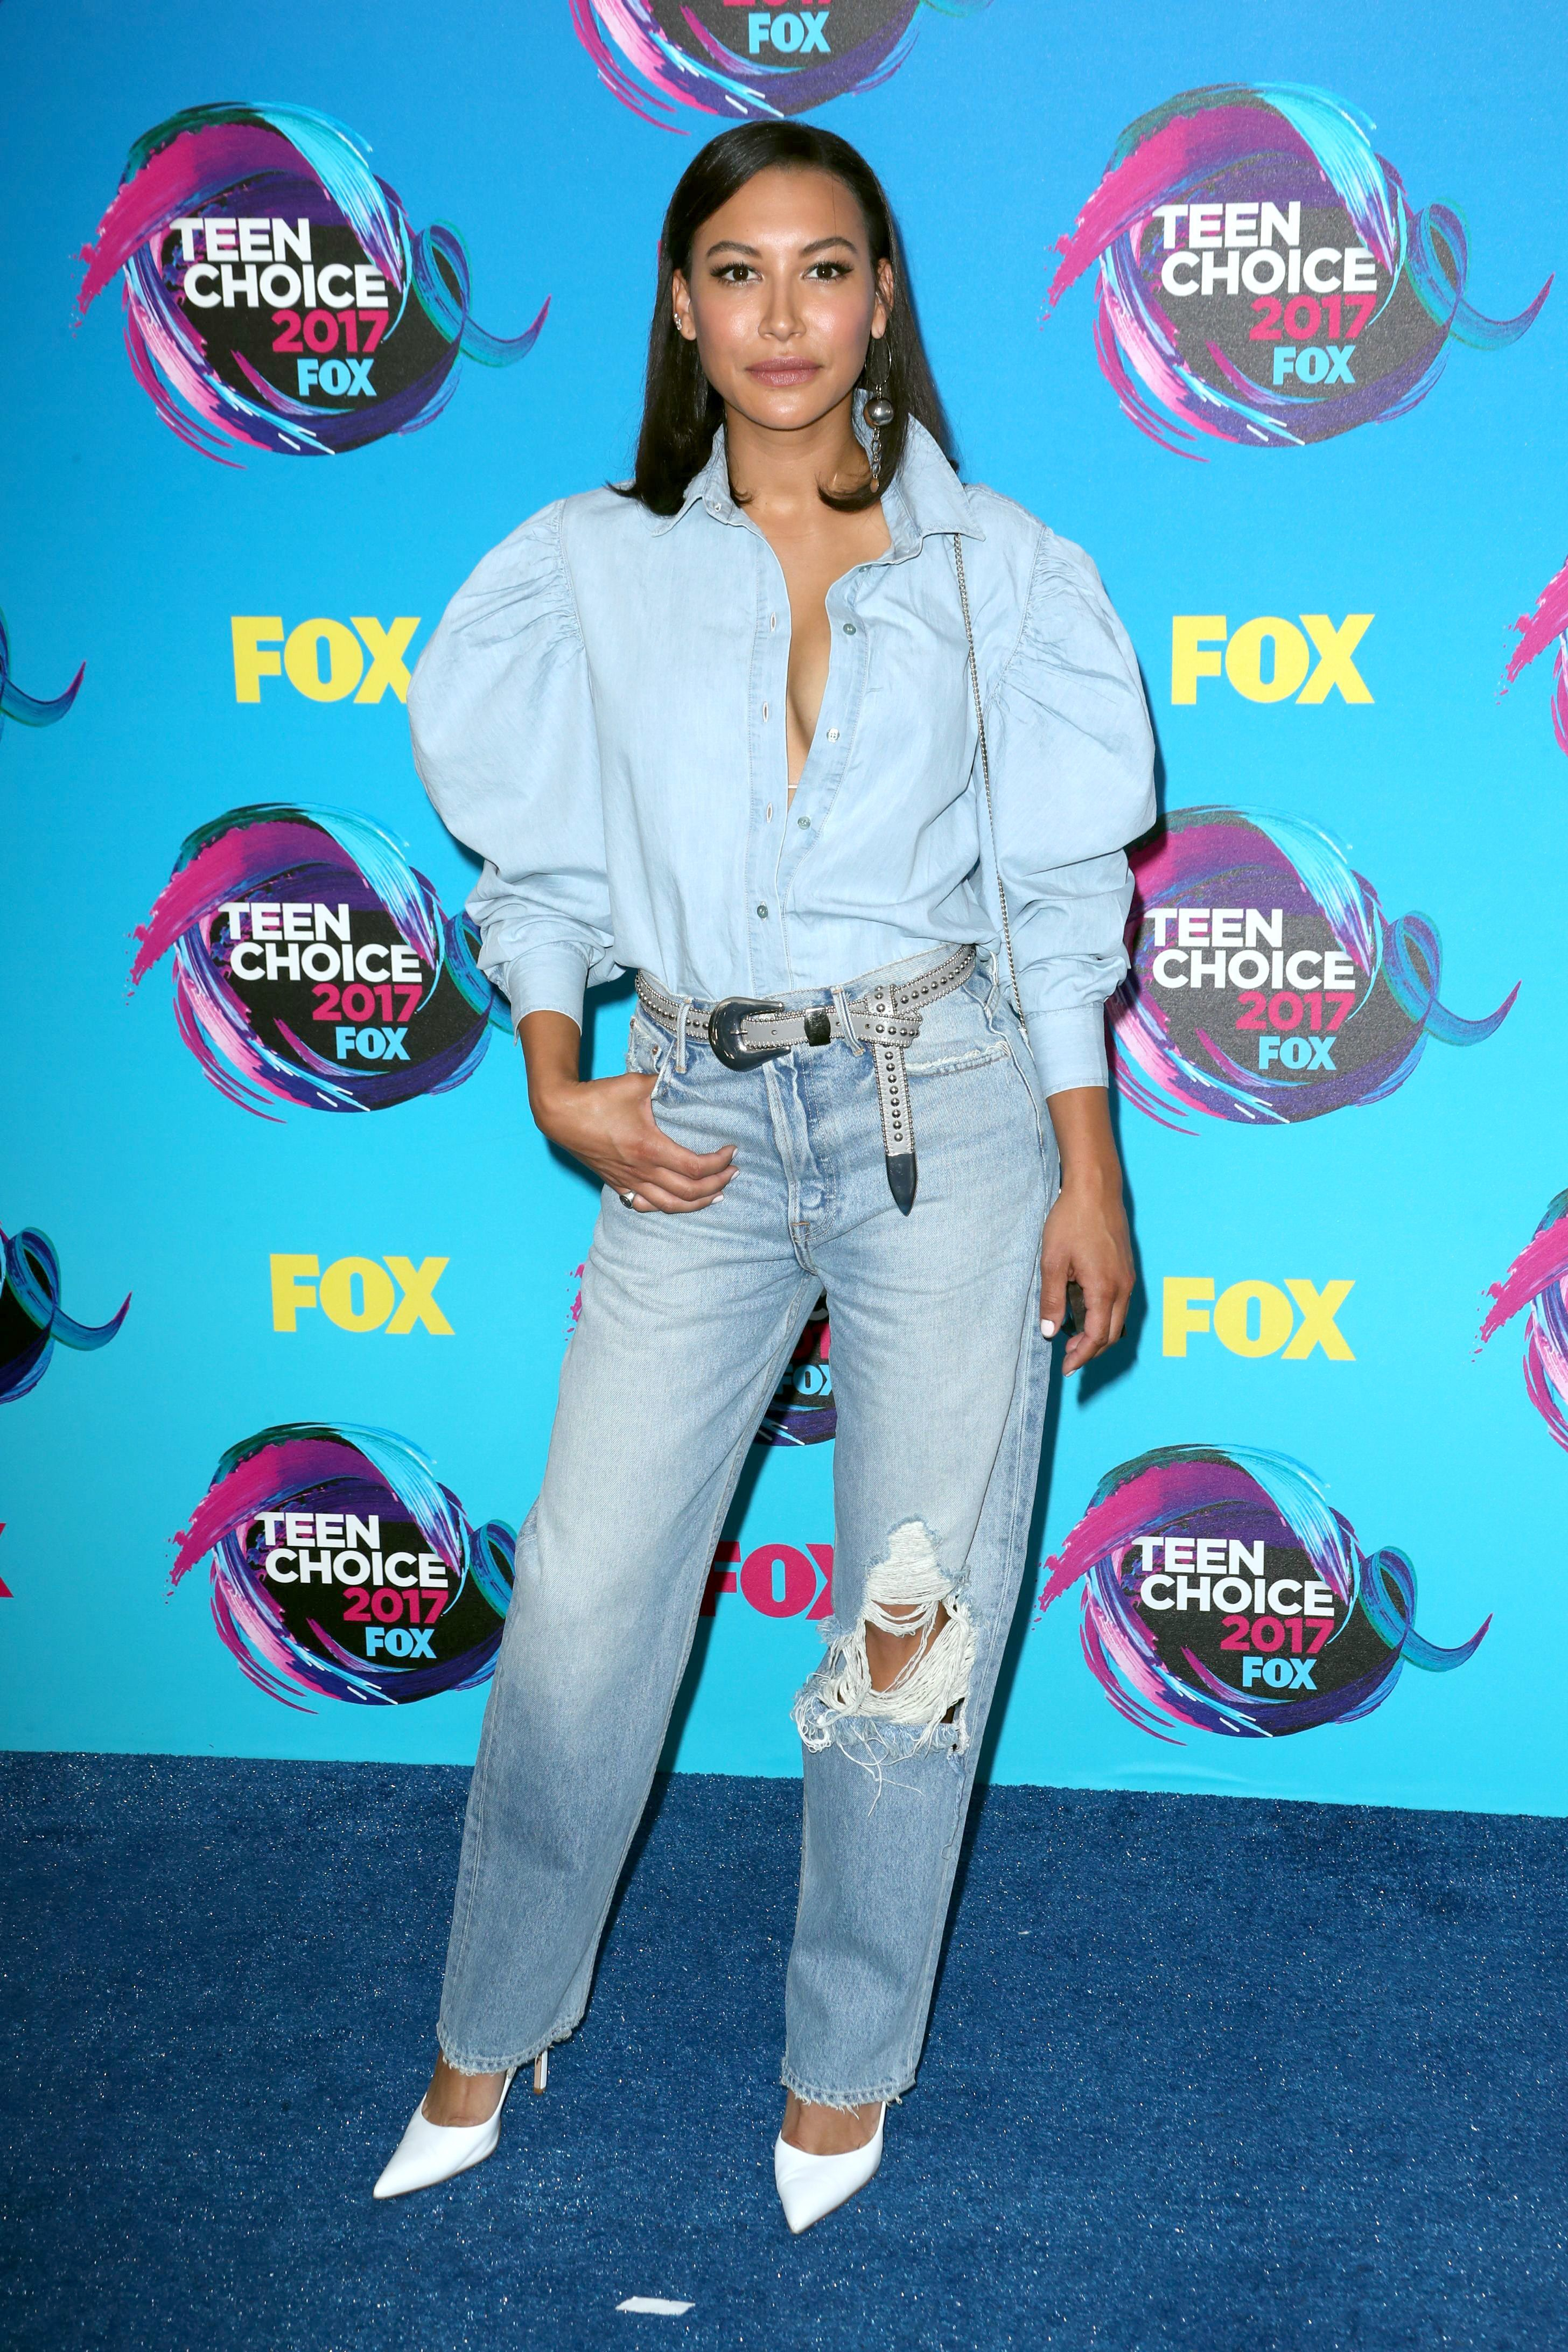 Naya Rivera attends the Teen Choice Awards in Los Angeles on Aug. 13, 2017.